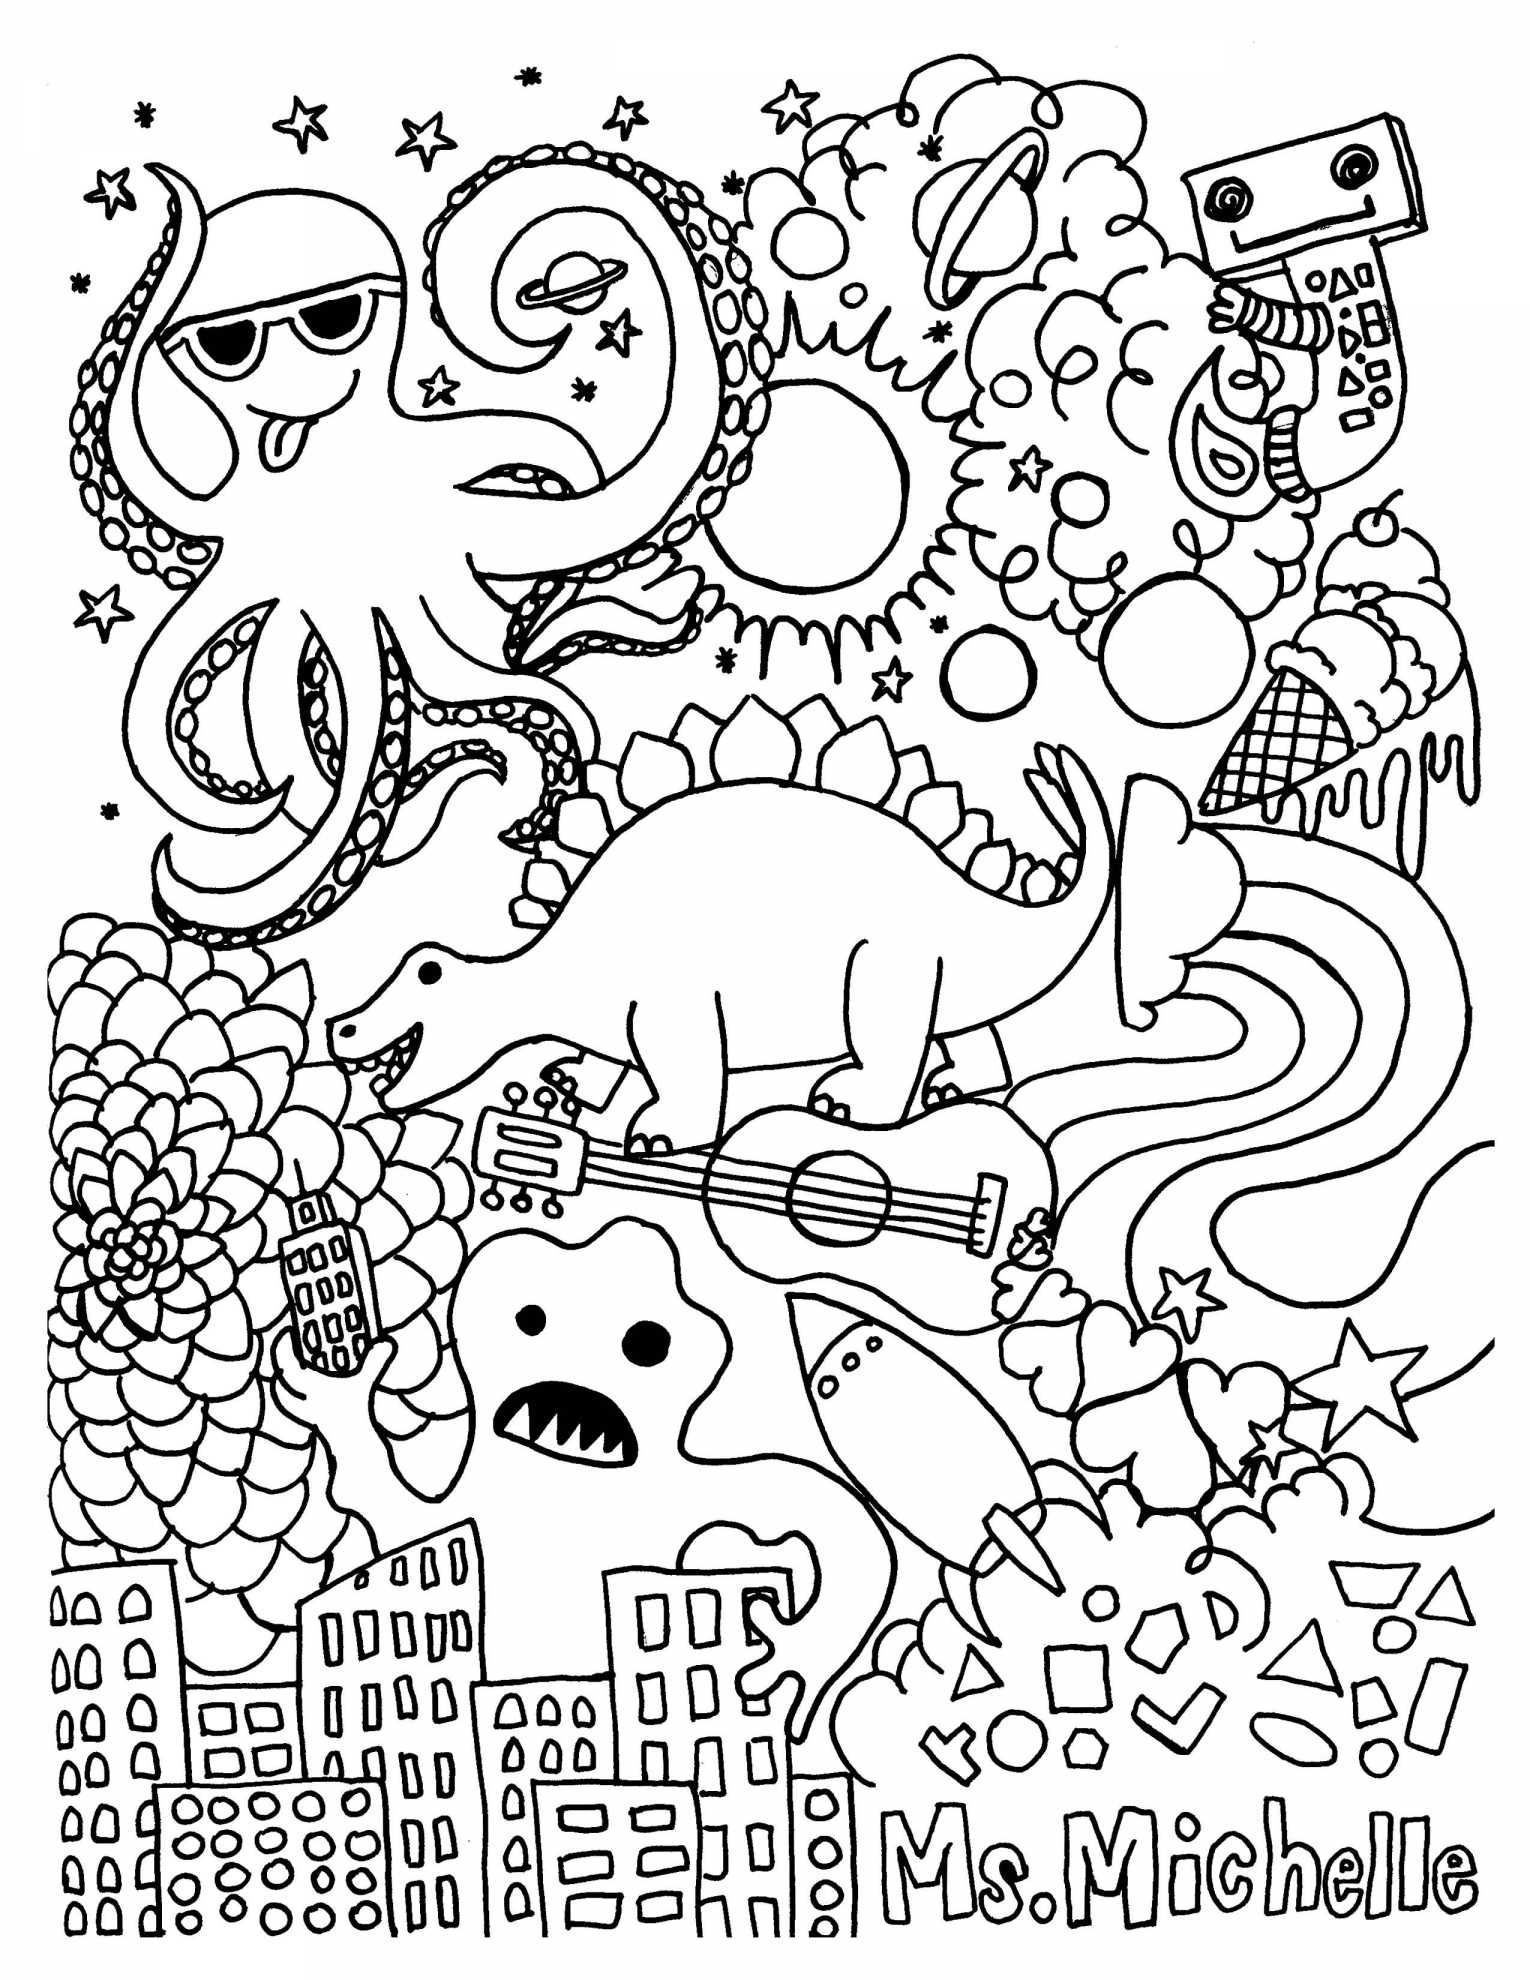 Christmas Coloring Book Printable With Fireplace Page Plants Vs Zombies Pages